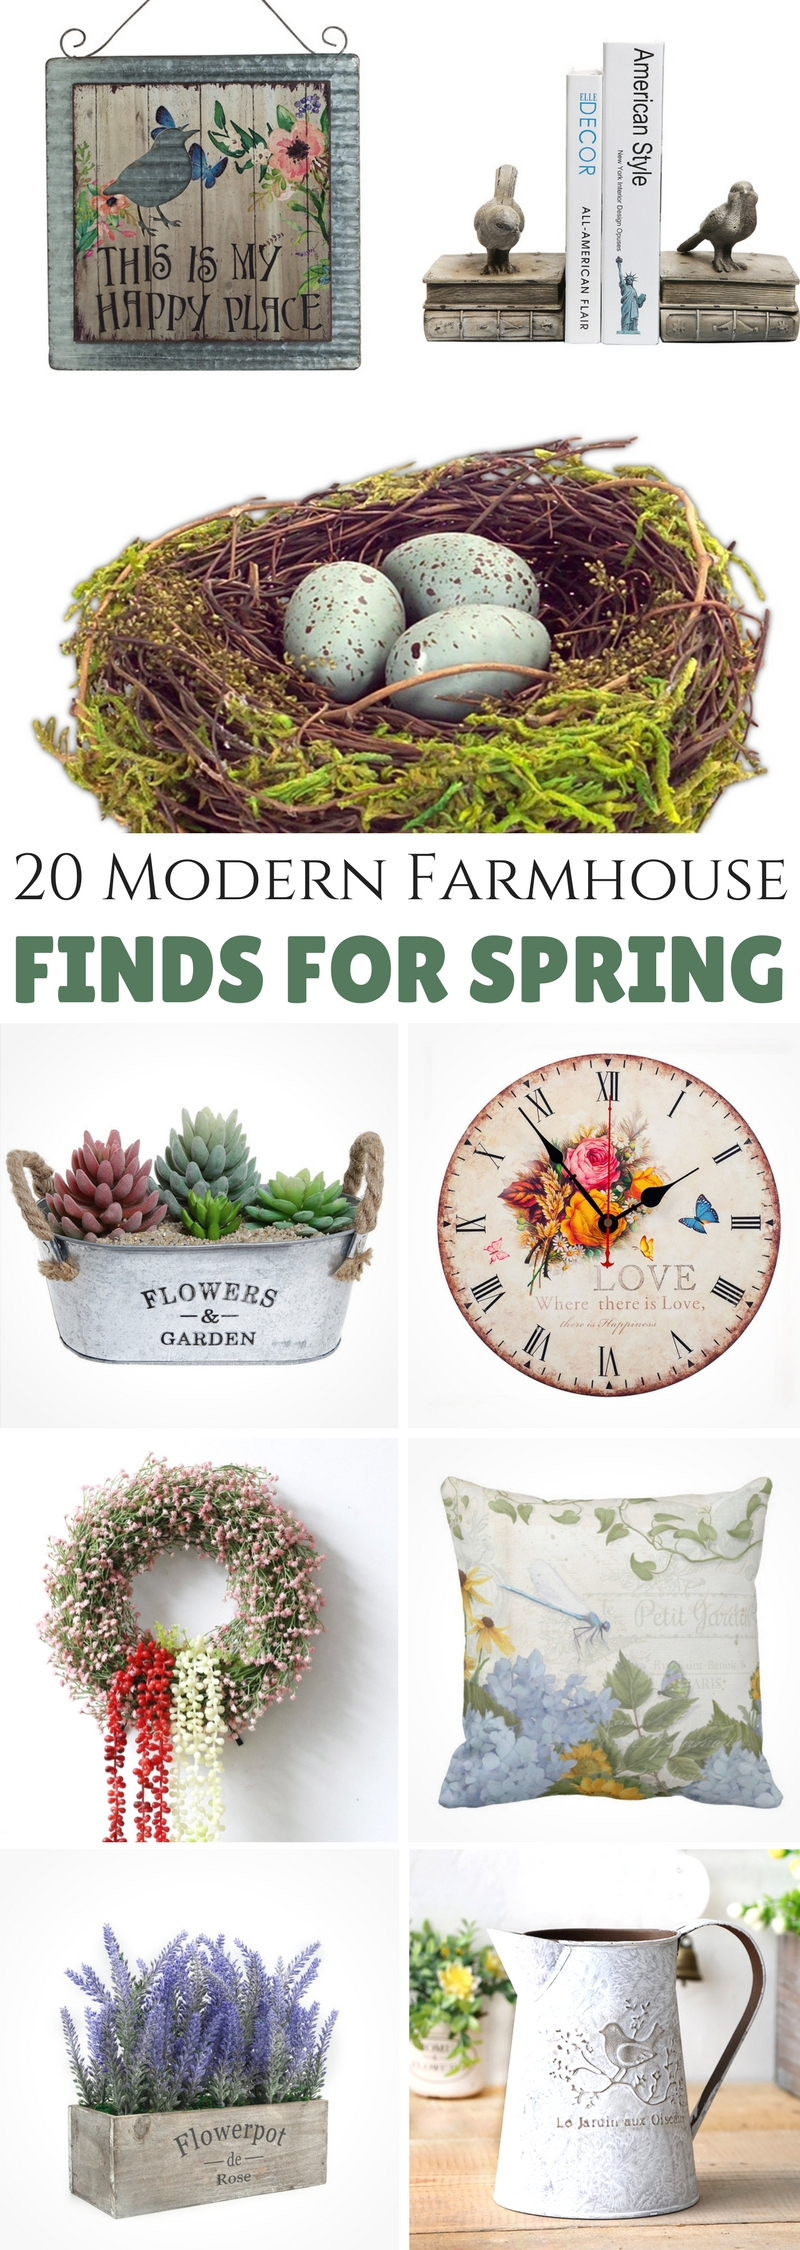 Modern Farmhouse Finds for Spring